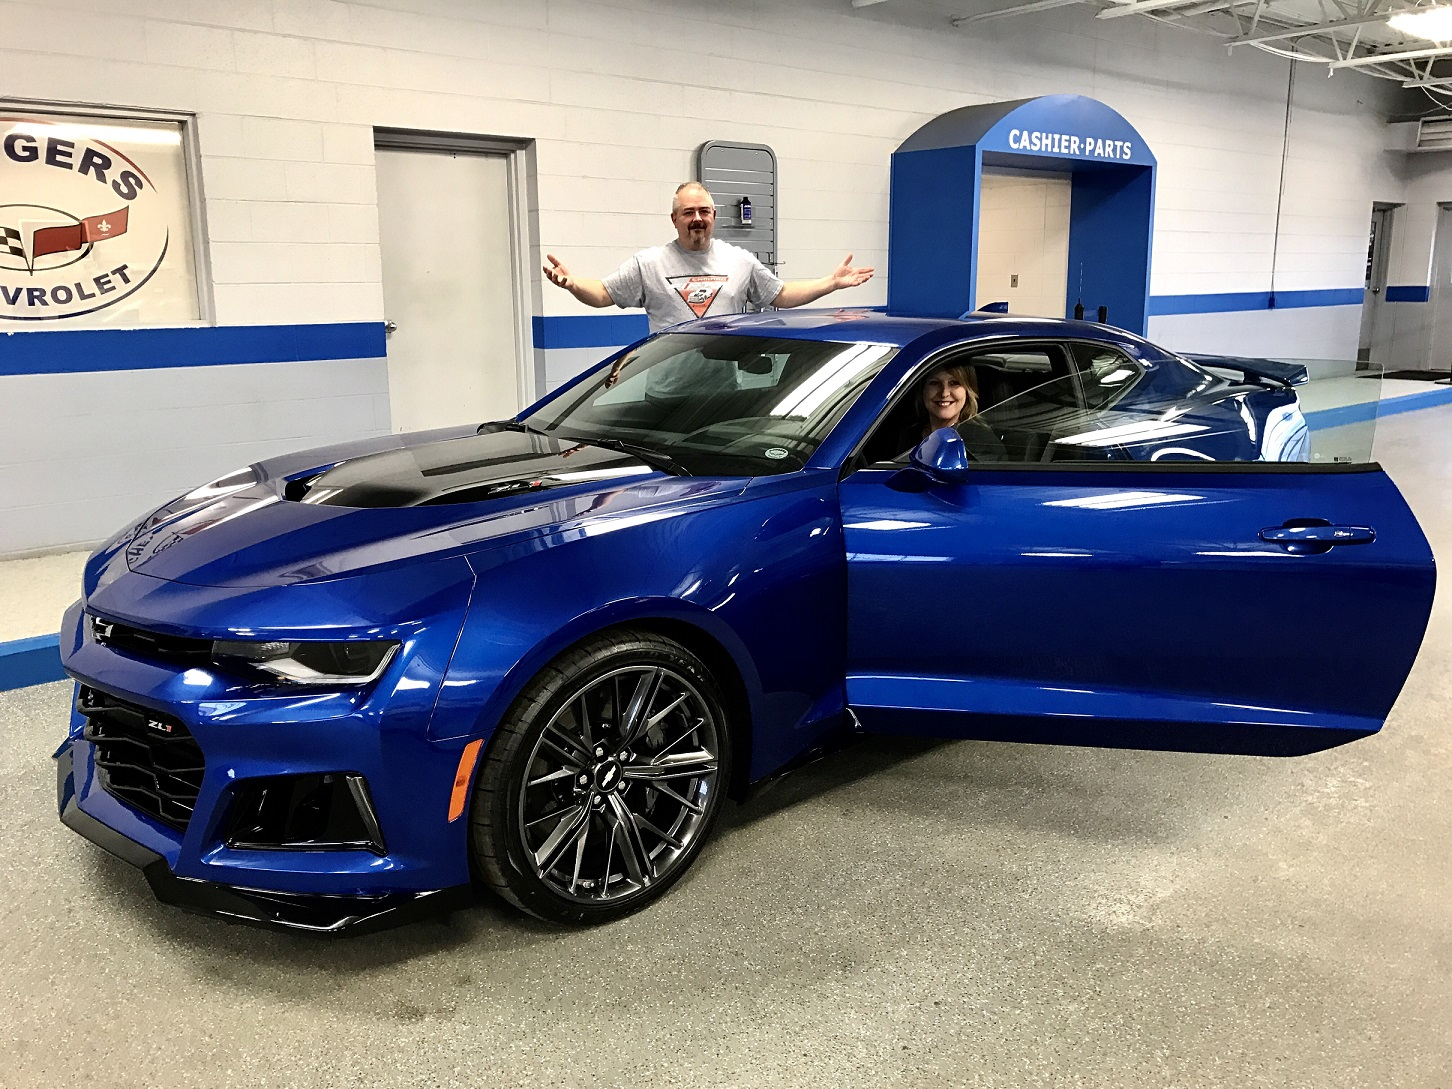 a10 zl1 hyper blue metallic 1st delivered camaro6. Black Bedroom Furniture Sets. Home Design Ideas